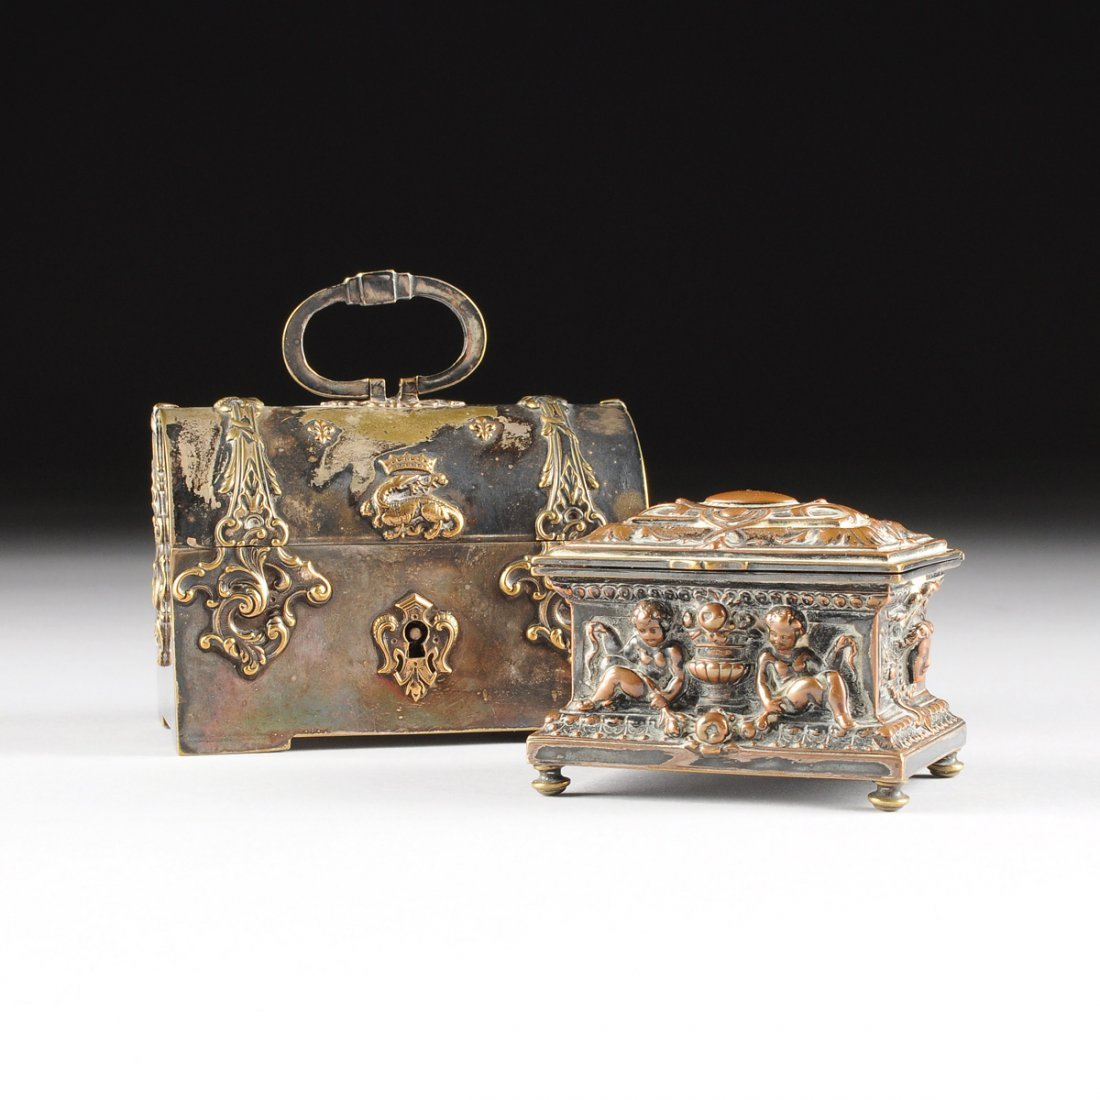 TWO ANTIQUE FRENCH SILVER PLATED KEEPSAKE BOXES, ONE BY